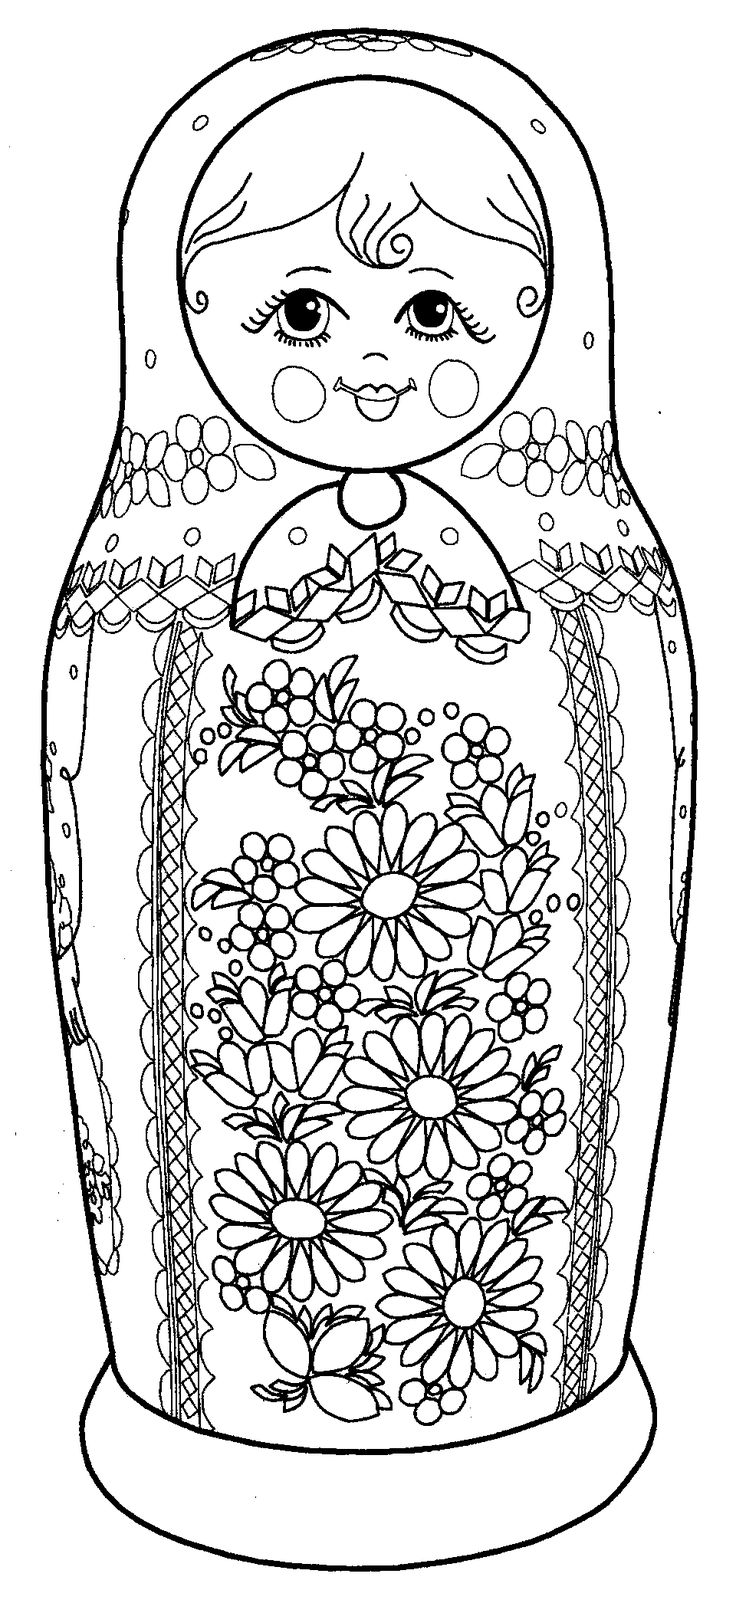 2189 best coloring images on pinterest coloring books drawings